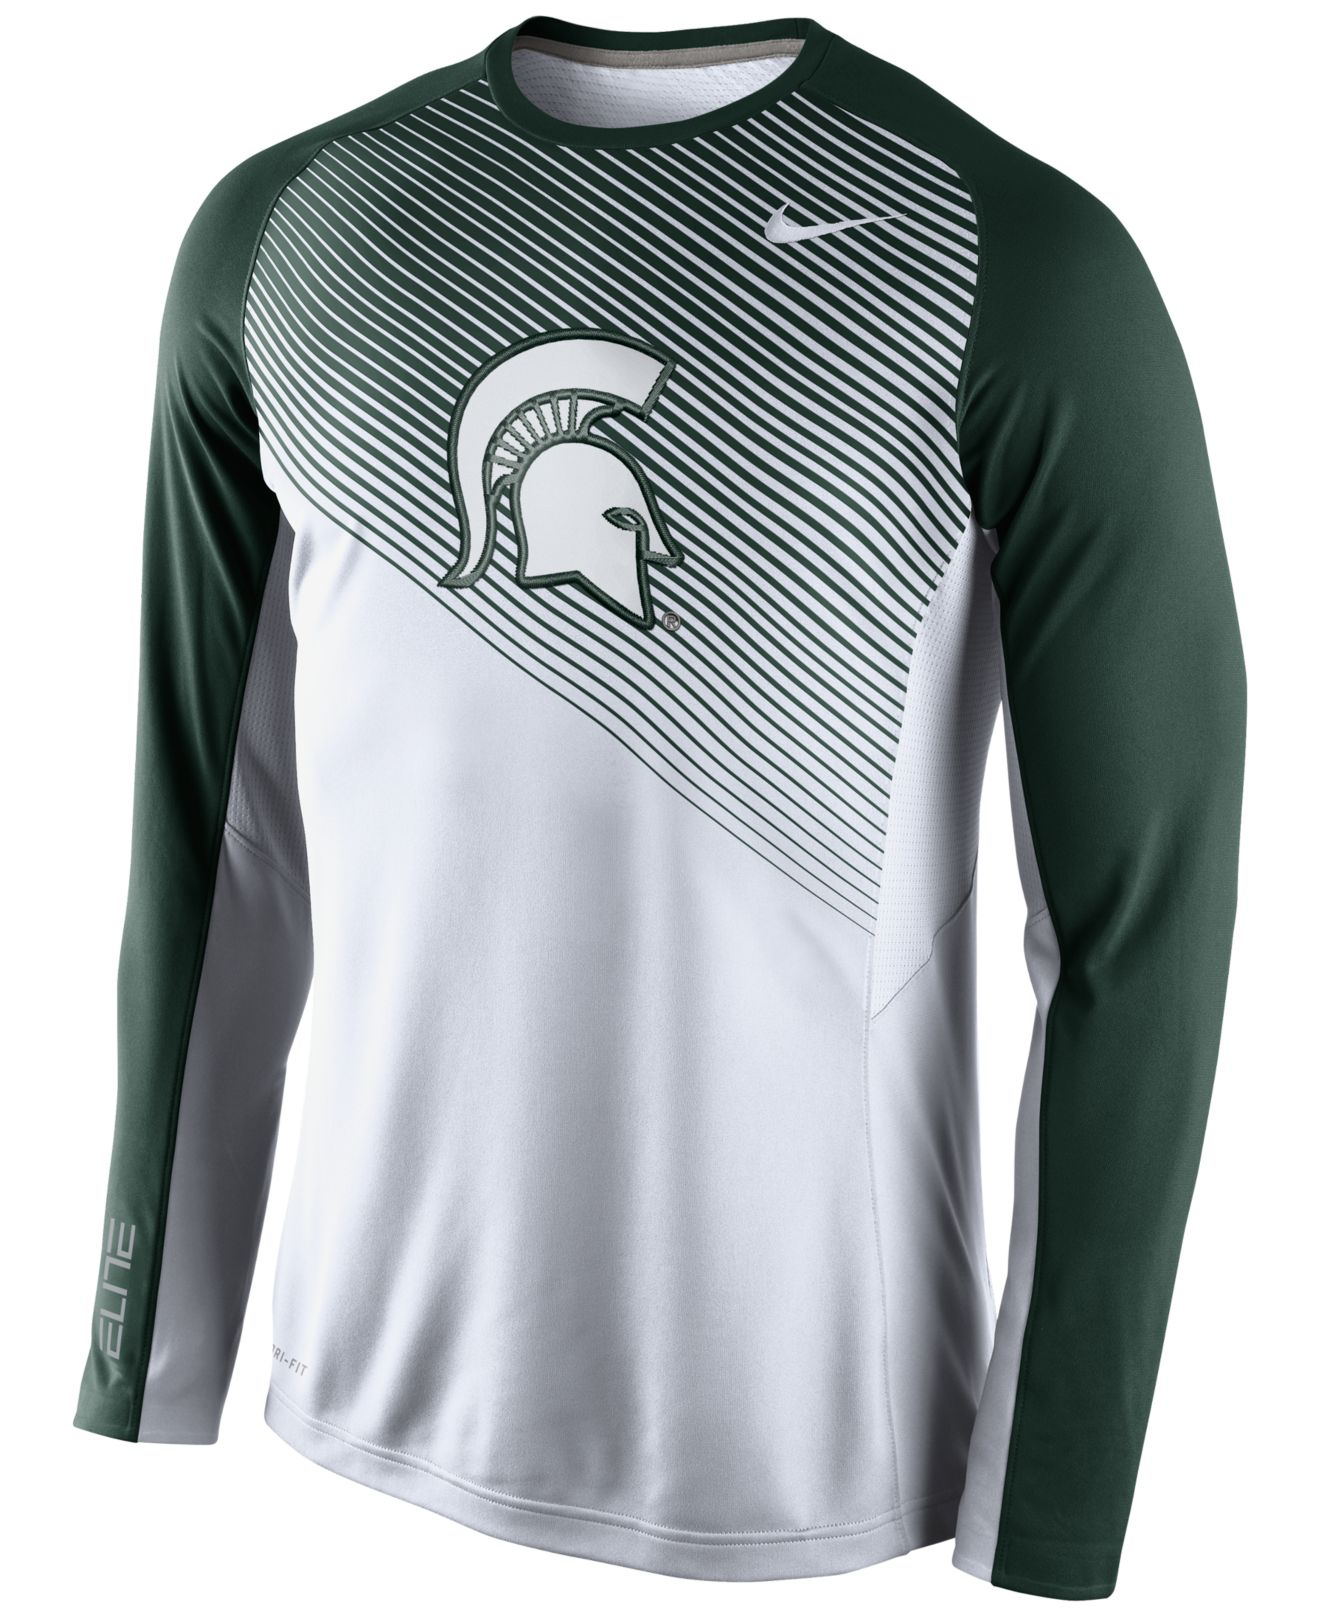 Lyst - Nike Men'S Long-Sleeve Michigan State Spartans ...